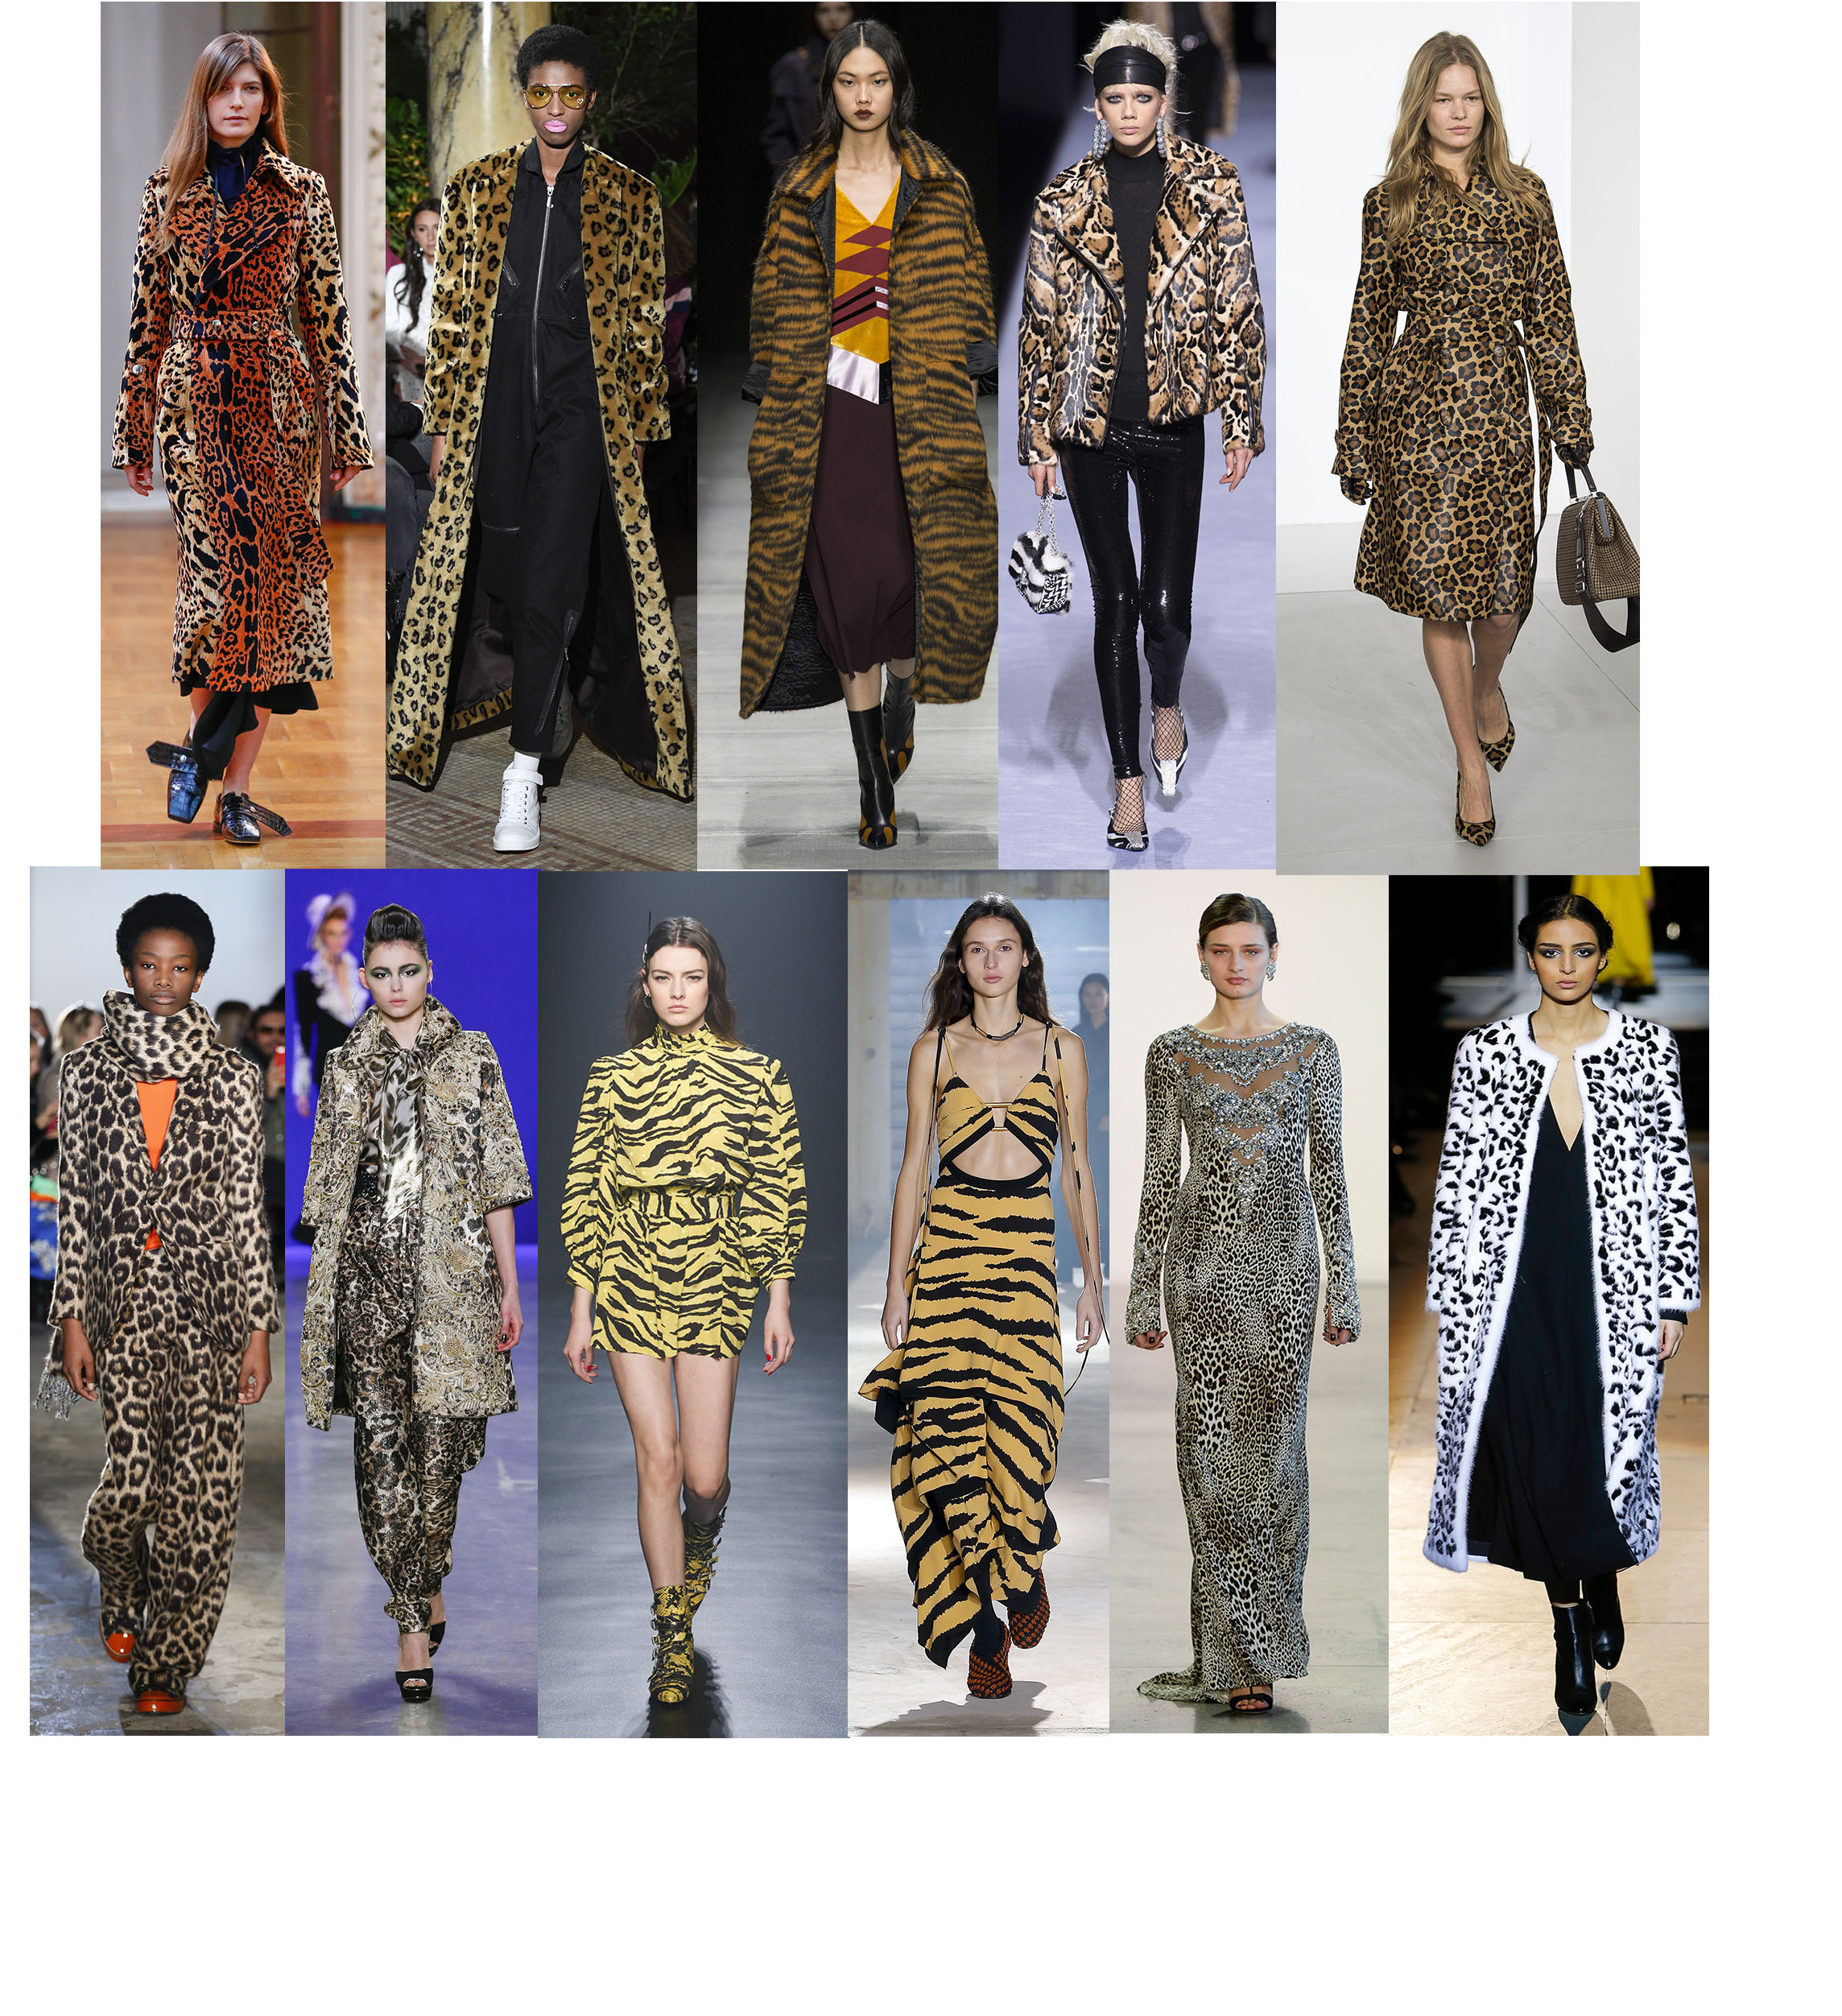 ANIMAL INSTINCTS - Animal print motifs are a recurring pattern that seems to make its way on the runway season after season. There is something truly timeless about leopard print. Cheetah and leopard first came into fashion in the 1930's, when the rich and famous embraced their extravagant lifestyles after the war, jetting off to exotic resort vacations. Emphasis on exotic: leopard was seen as a playful, whimsical embrace of the natural world and its beauty. At New York Fashion Week, leopard popped up everywhere, adding a playful appeal to otherwise structured and tailored silhouettes. But that's not the only wild feline designers are looking to for inspiration- tiger stripes appeared as well. Victoria Beckham, Juicy Couture, Bottega Veneta, Tom Ford, Michael Kors, R13, Naeem Khan, Zadig & Voltaire, Proenza Schouler, Badgley Mischka, Carolina Herrera